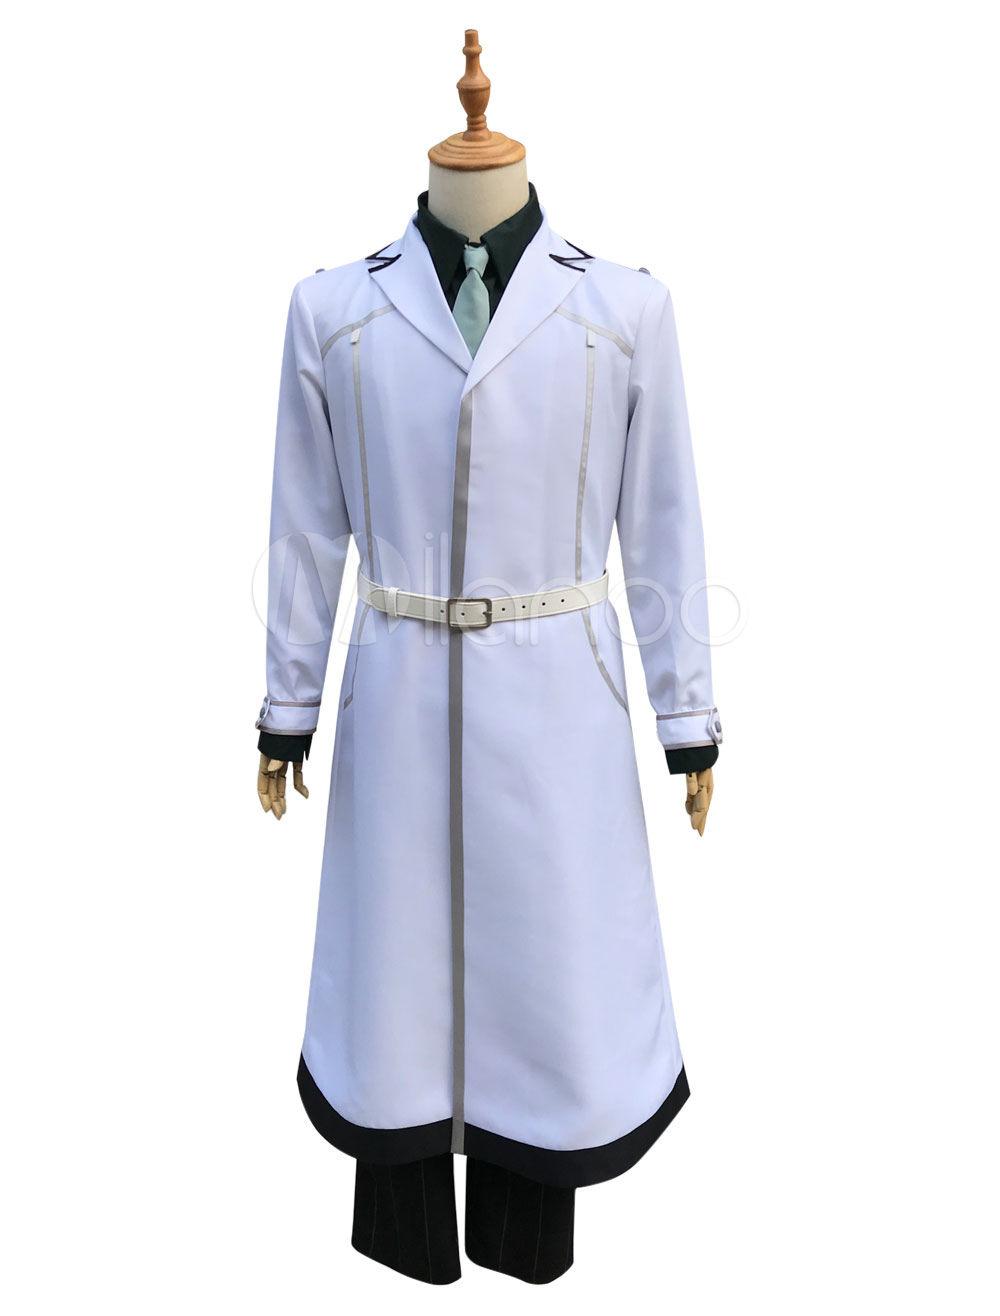 Tokyo Ghoul re Mutsuki Toru Uniform Outfit Suit Halloween Cosplay Costume